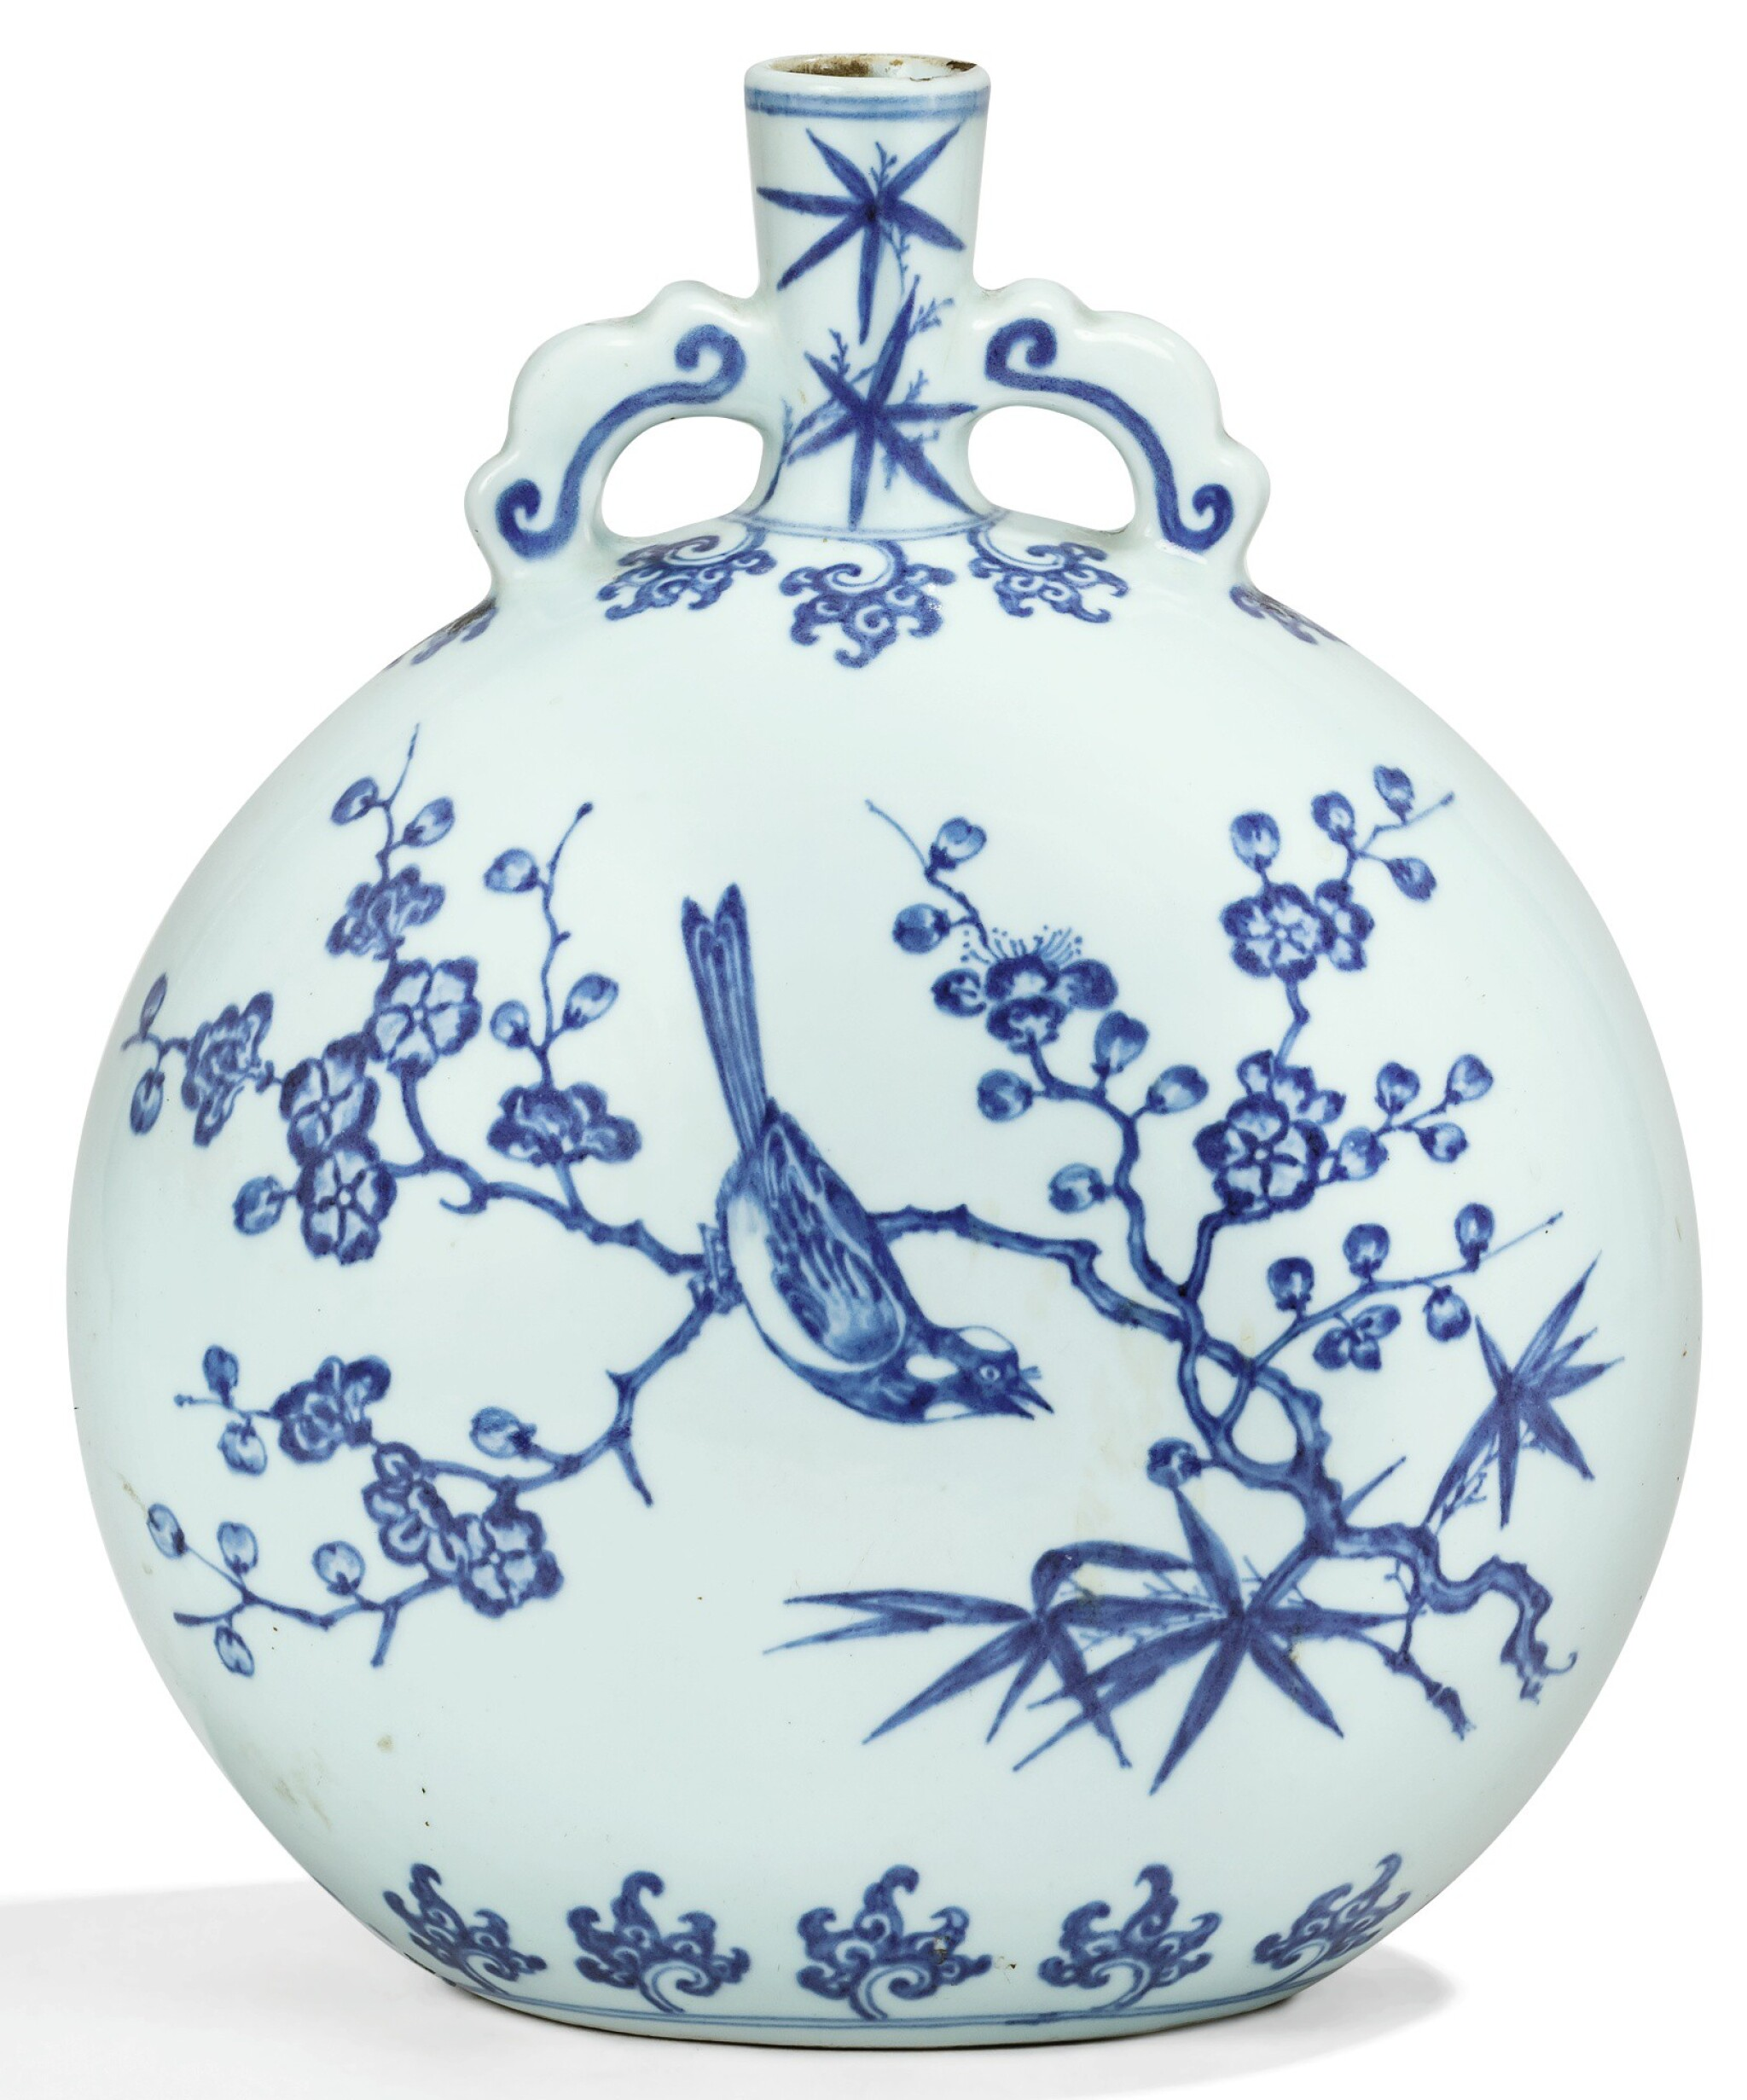 View 1 of Lot 9. RARE GOURDE EN PORCELAINE BLEU BLANC DYNASTIE QING, ÉPOQUE YONGZHENG | 清雍正 青花喜鵲登梅抱月瓶 | A rare Ming-Style blue and white moonflask, Qing Dynasty, Yongzheng period.